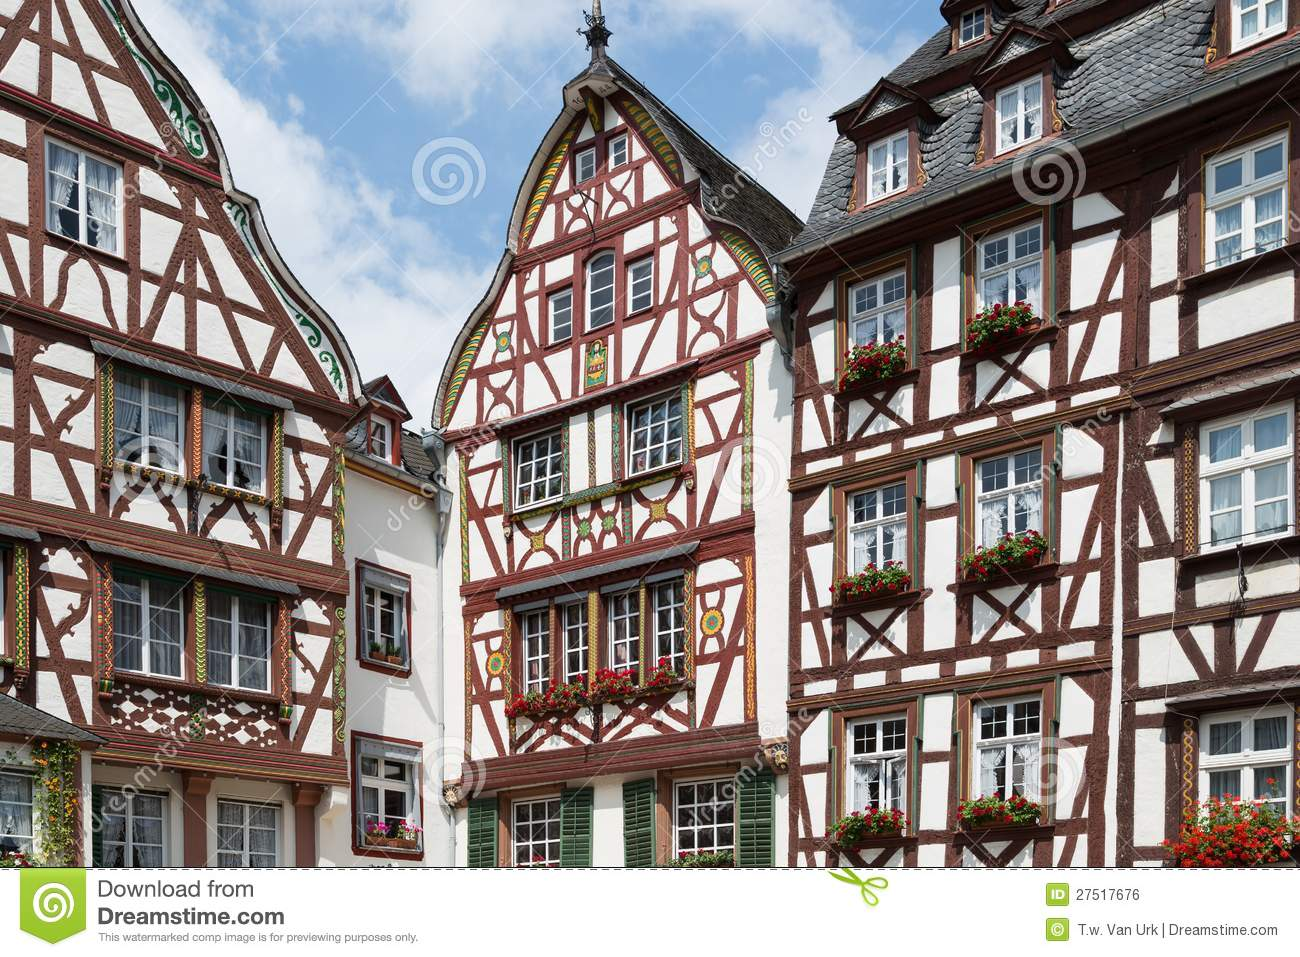 mittelalterliche h user in bernkastel deutschland stockfoto bild 27517676. Black Bedroom Furniture Sets. Home Design Ideas